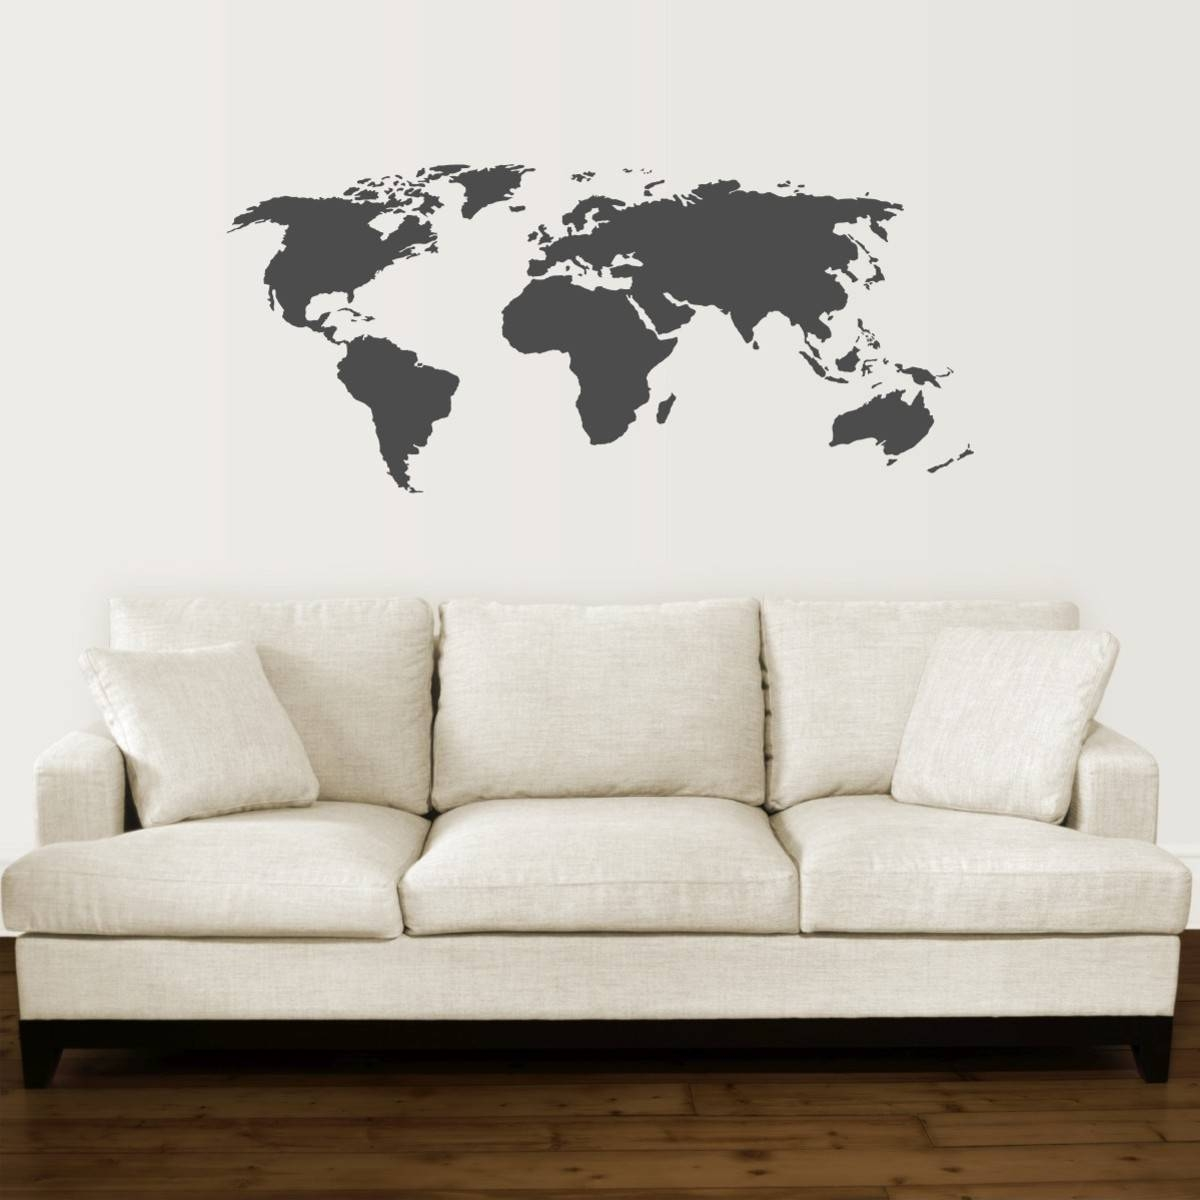 World Map Wall Quotes™ Wall Art Decal | Wallquotes With 2018 Worldmap Wall Art (View 18 of 20)